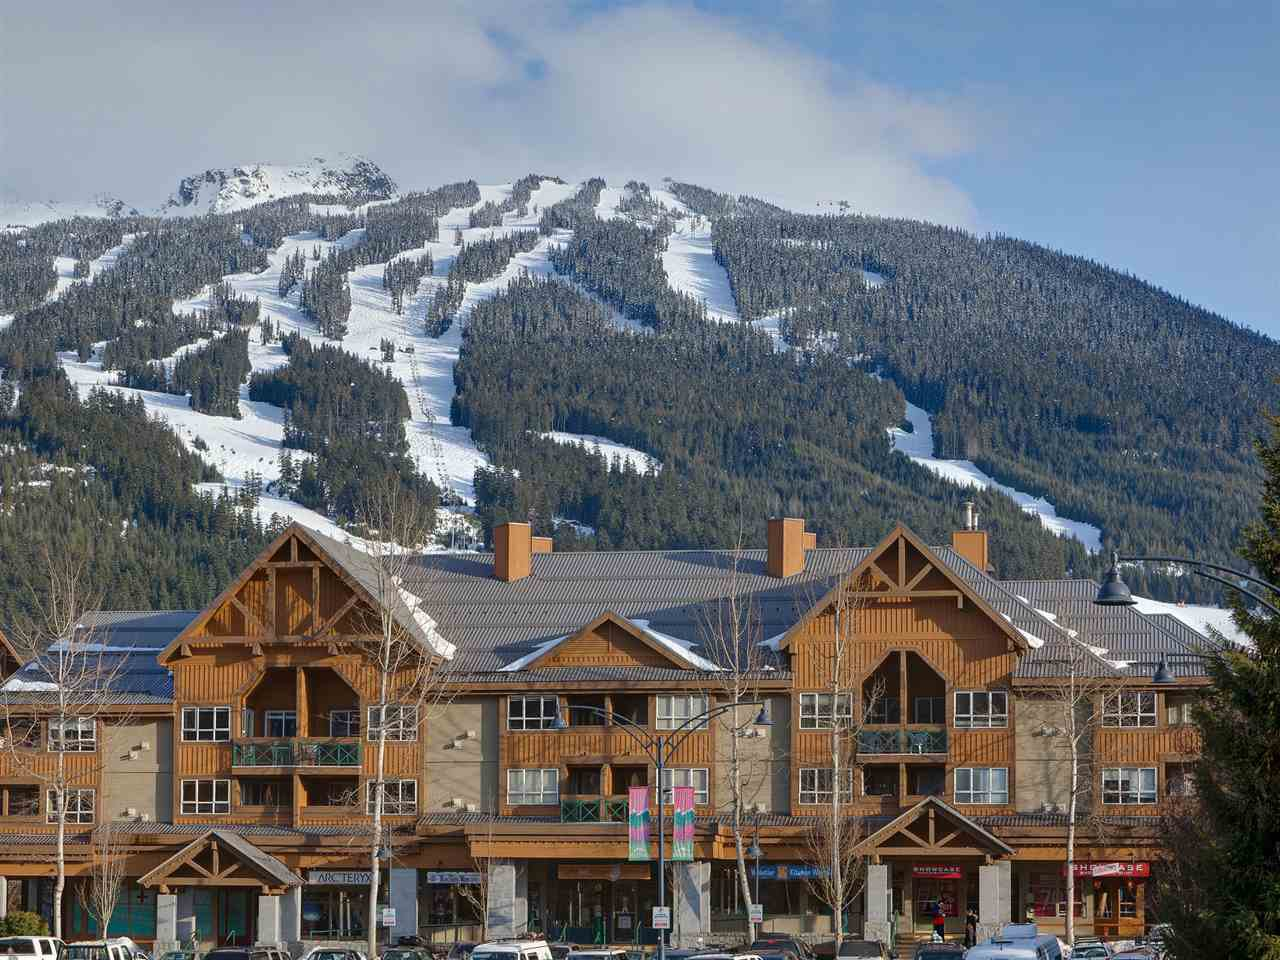 Main Photo: 326 4360 LORIMER ROAD in Whistler: Whistler Village Condo for sale : MLS®# R2127379